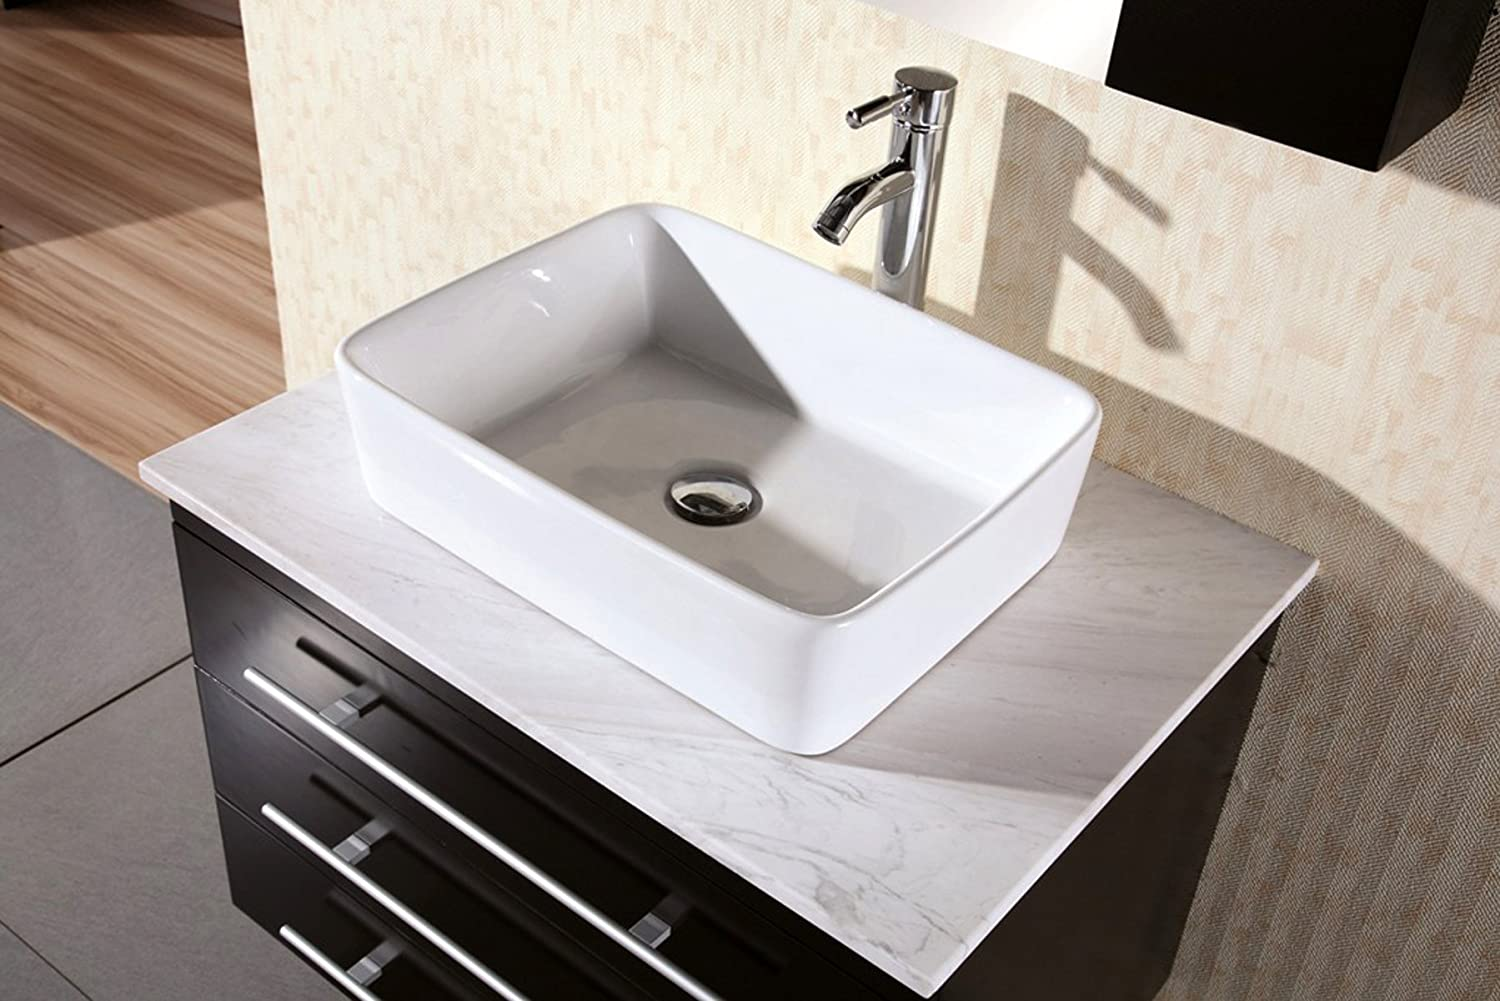 Design Element Elton Wall Mount Single Vessel Sink Vanity With Tempered  Glass Countertop, 24 Inch   Modern Vanity With Vessel Sink Combo    Amazon.com